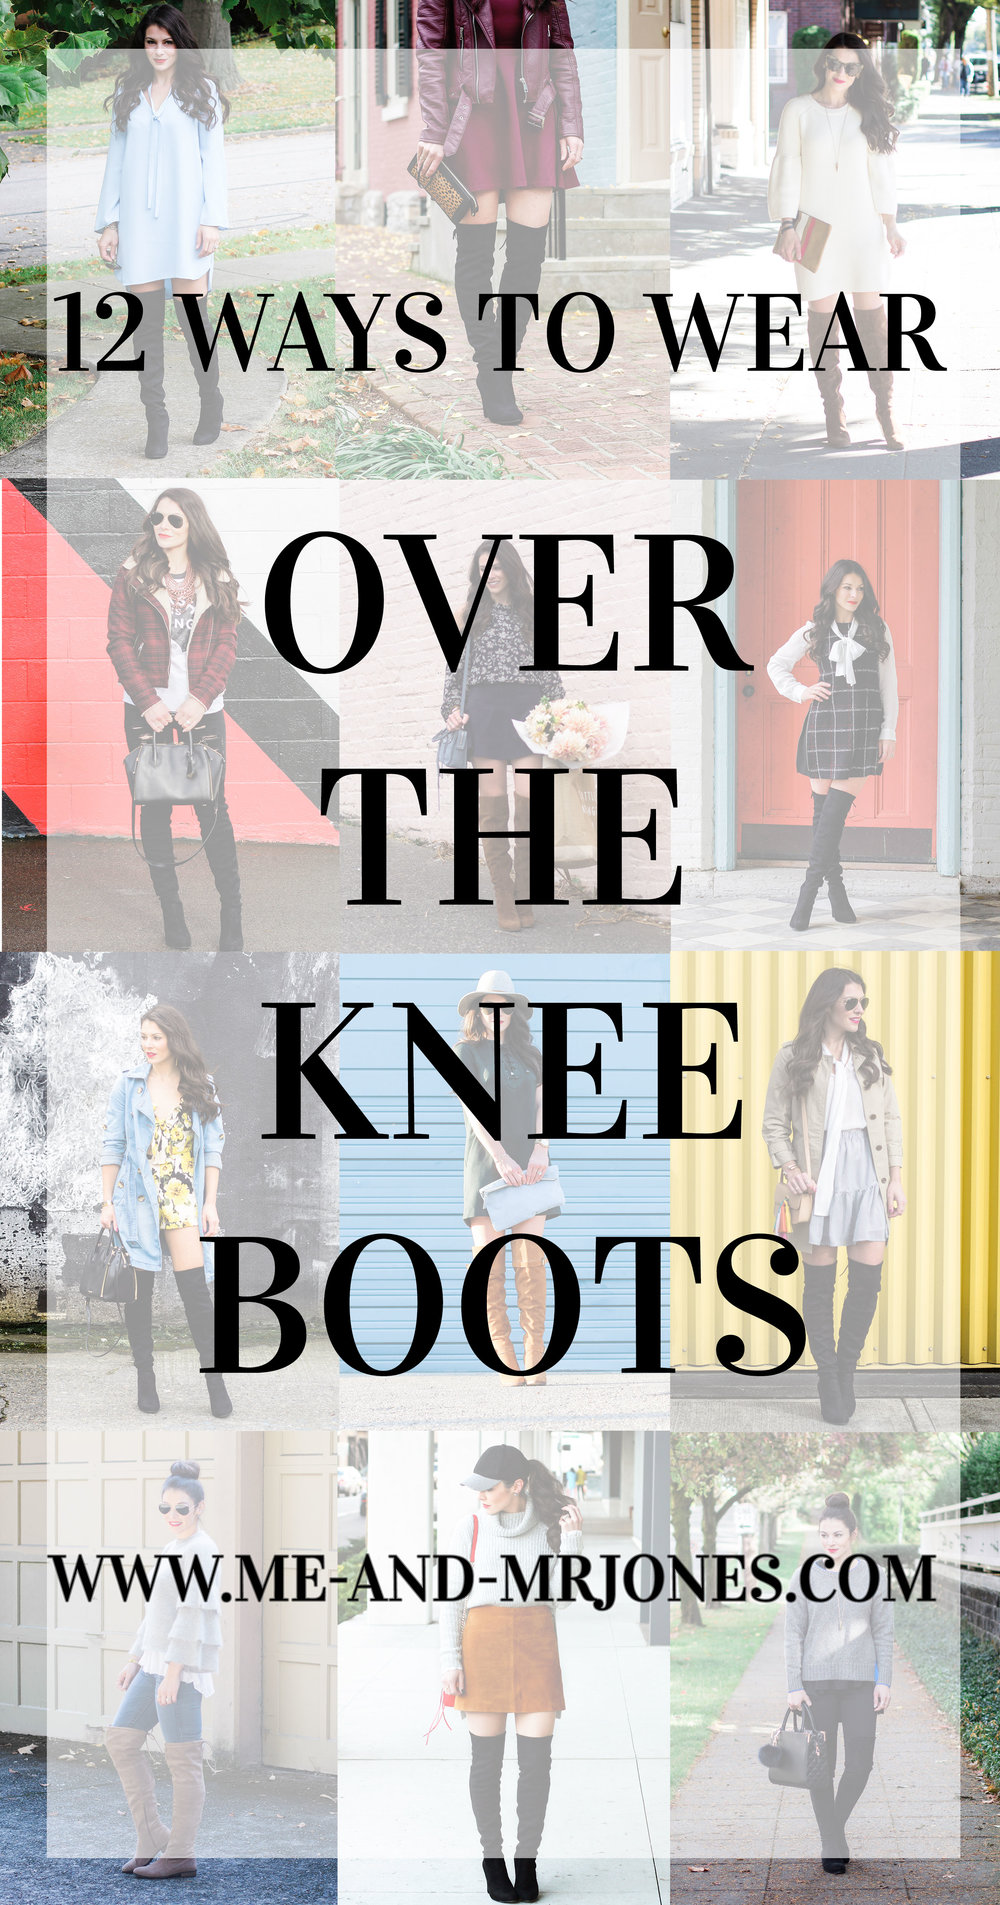 12 ways to wear over the knee boots, cute fall outfit ideas, Steve Madden Gorgeous boots, Steve Madden Eternul OTK boots